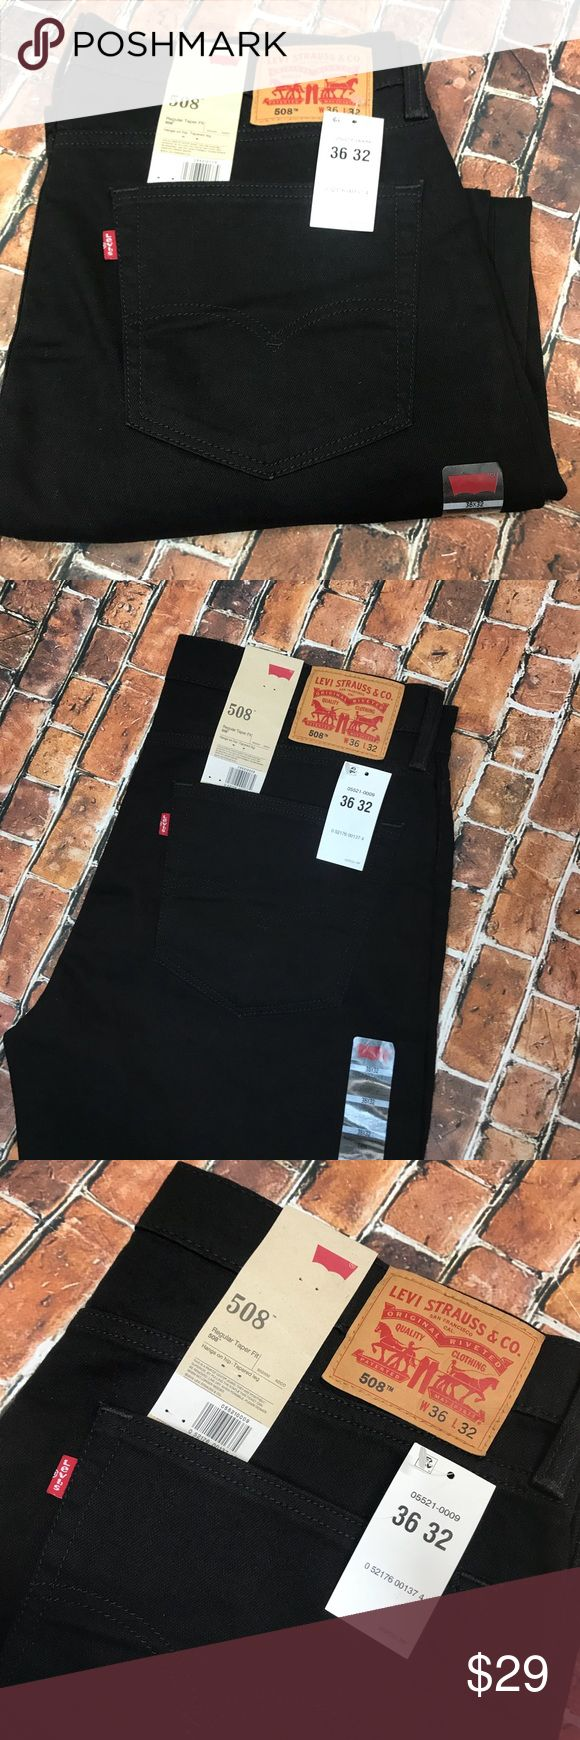 """Black Men's Levi Jeans New with Tags Levi's Black Levi 508 Jeans. New with tags!   Brand: Levi  Size: 36x32  Measurements:  waist 19.5"""", rise 11"""", Inseam 31"""".   Shipping: I normally ship in one day (maybe 2).   Please check out all the pictures above because they are part of the description. Thank you for looking and I invite you to check out my other listings for more deals! Levi's Jeans Relaxed"""